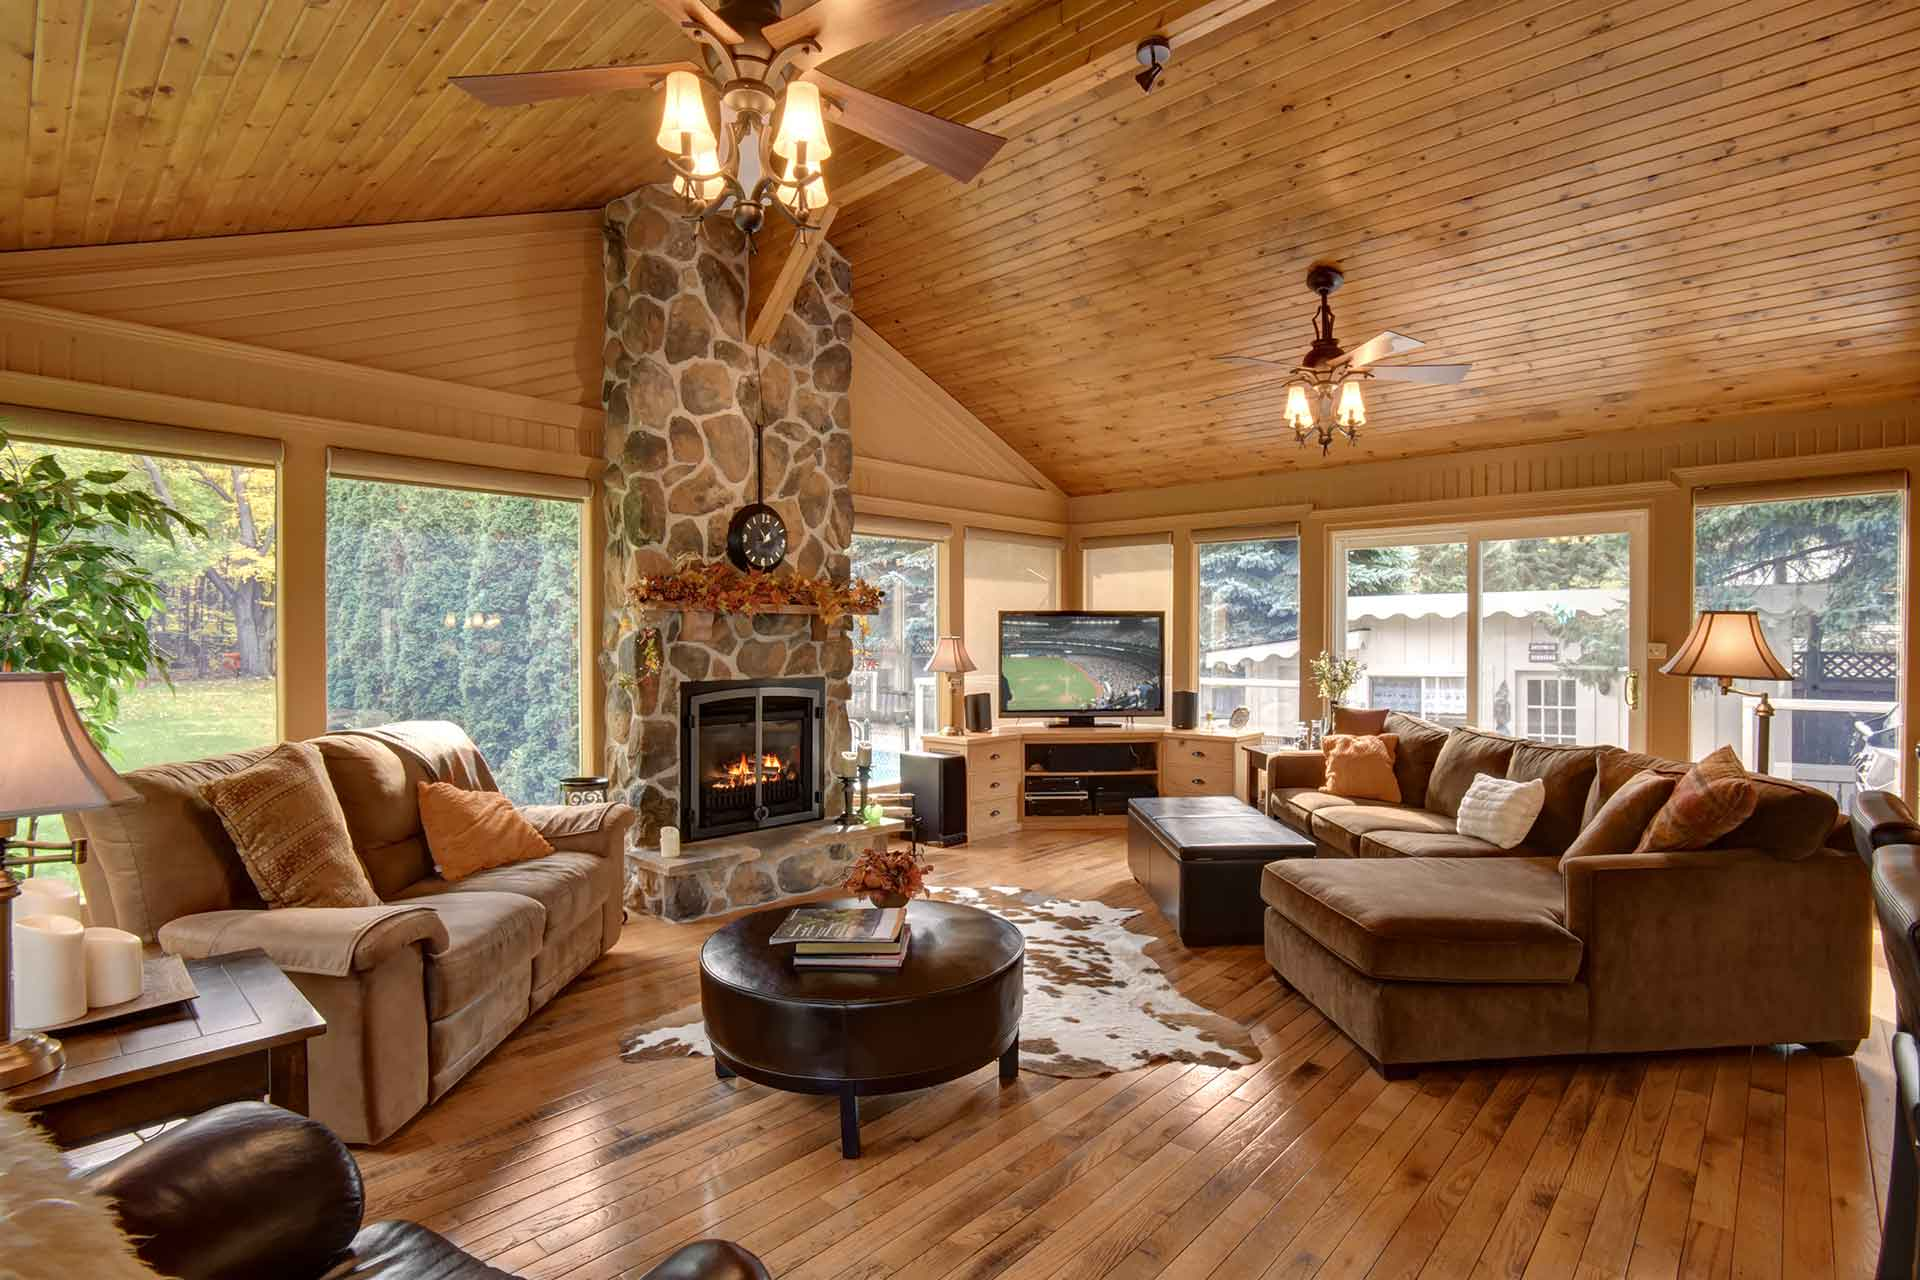 Great Room, Pine Ceiling, Stone Fireplace, Window Wall